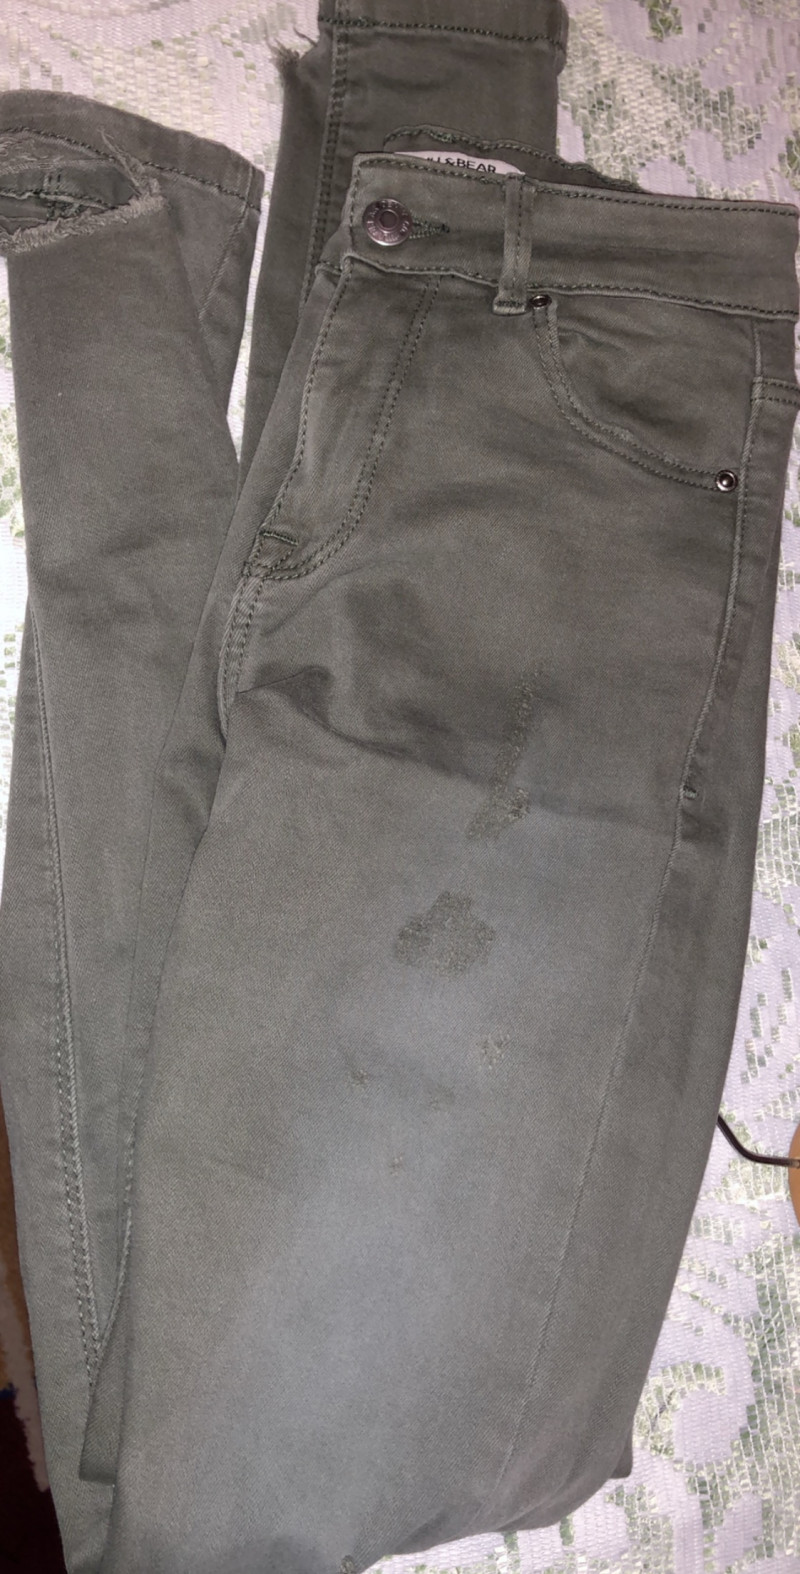 Jean 32 PULL AND BEAR